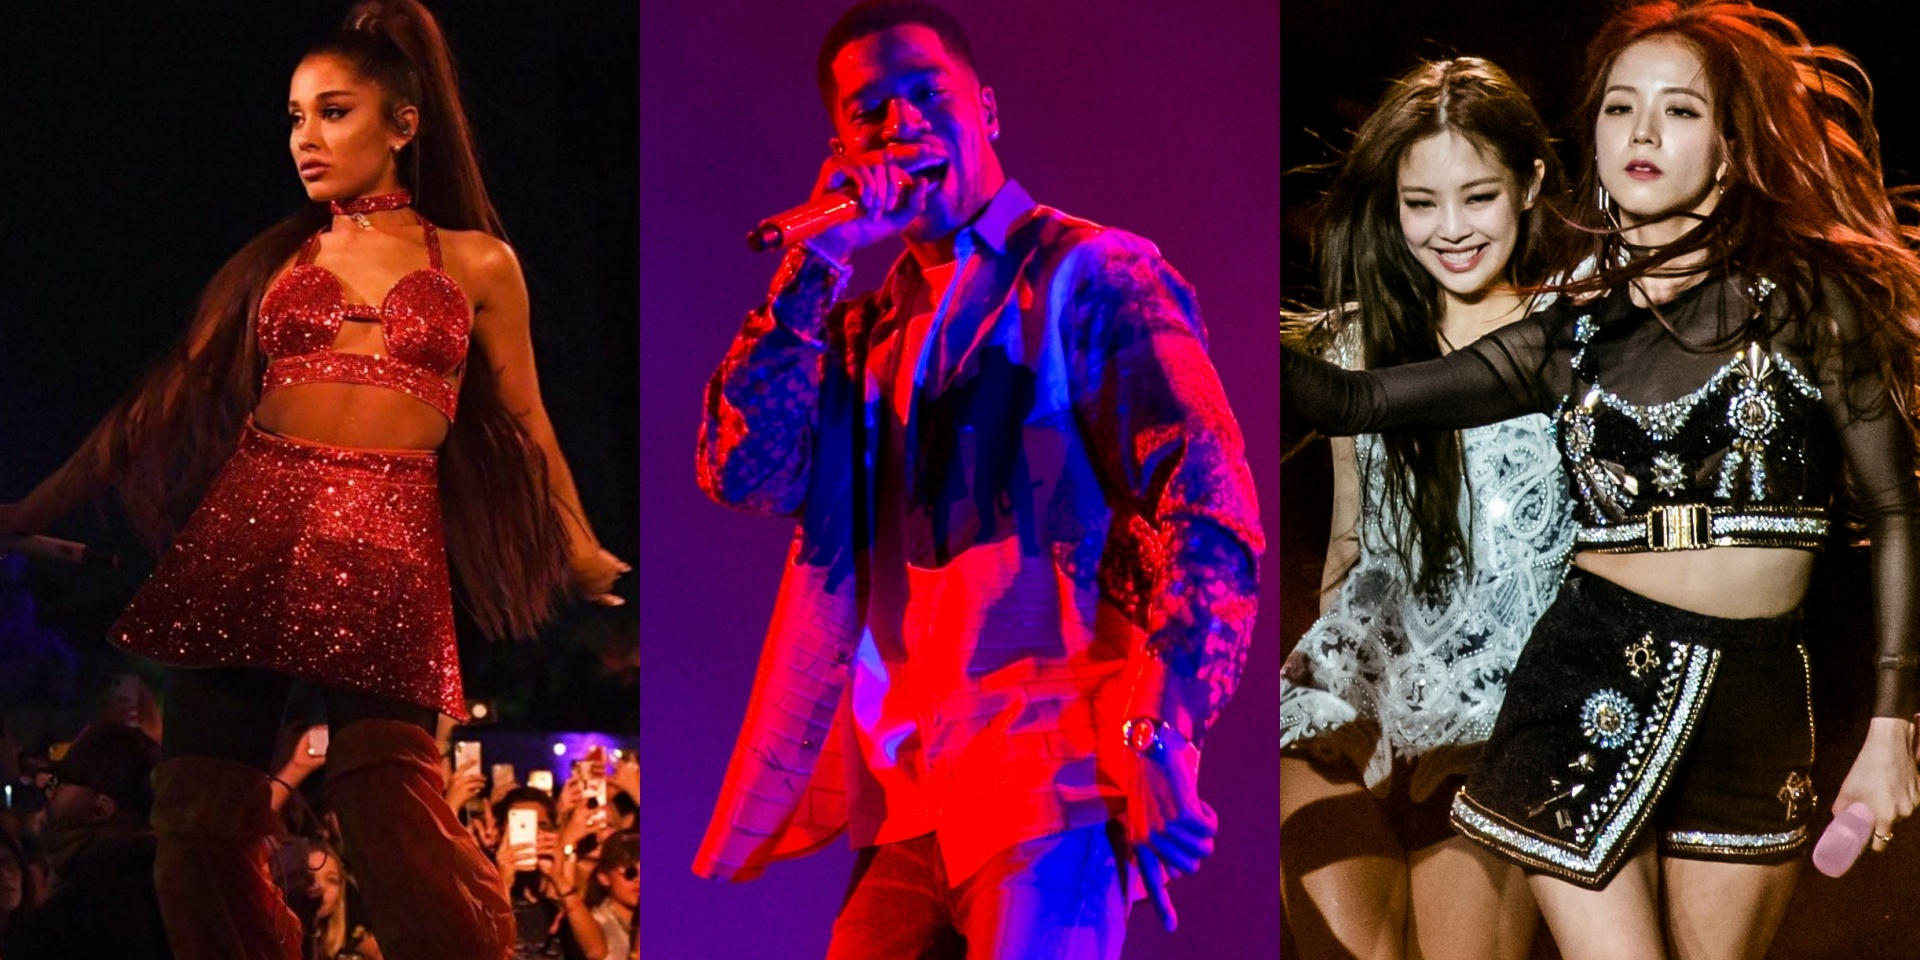 Coachella 2019 Weekend One Roundup: Ariana Grande, Kid Cudi, BLACKPINK and more